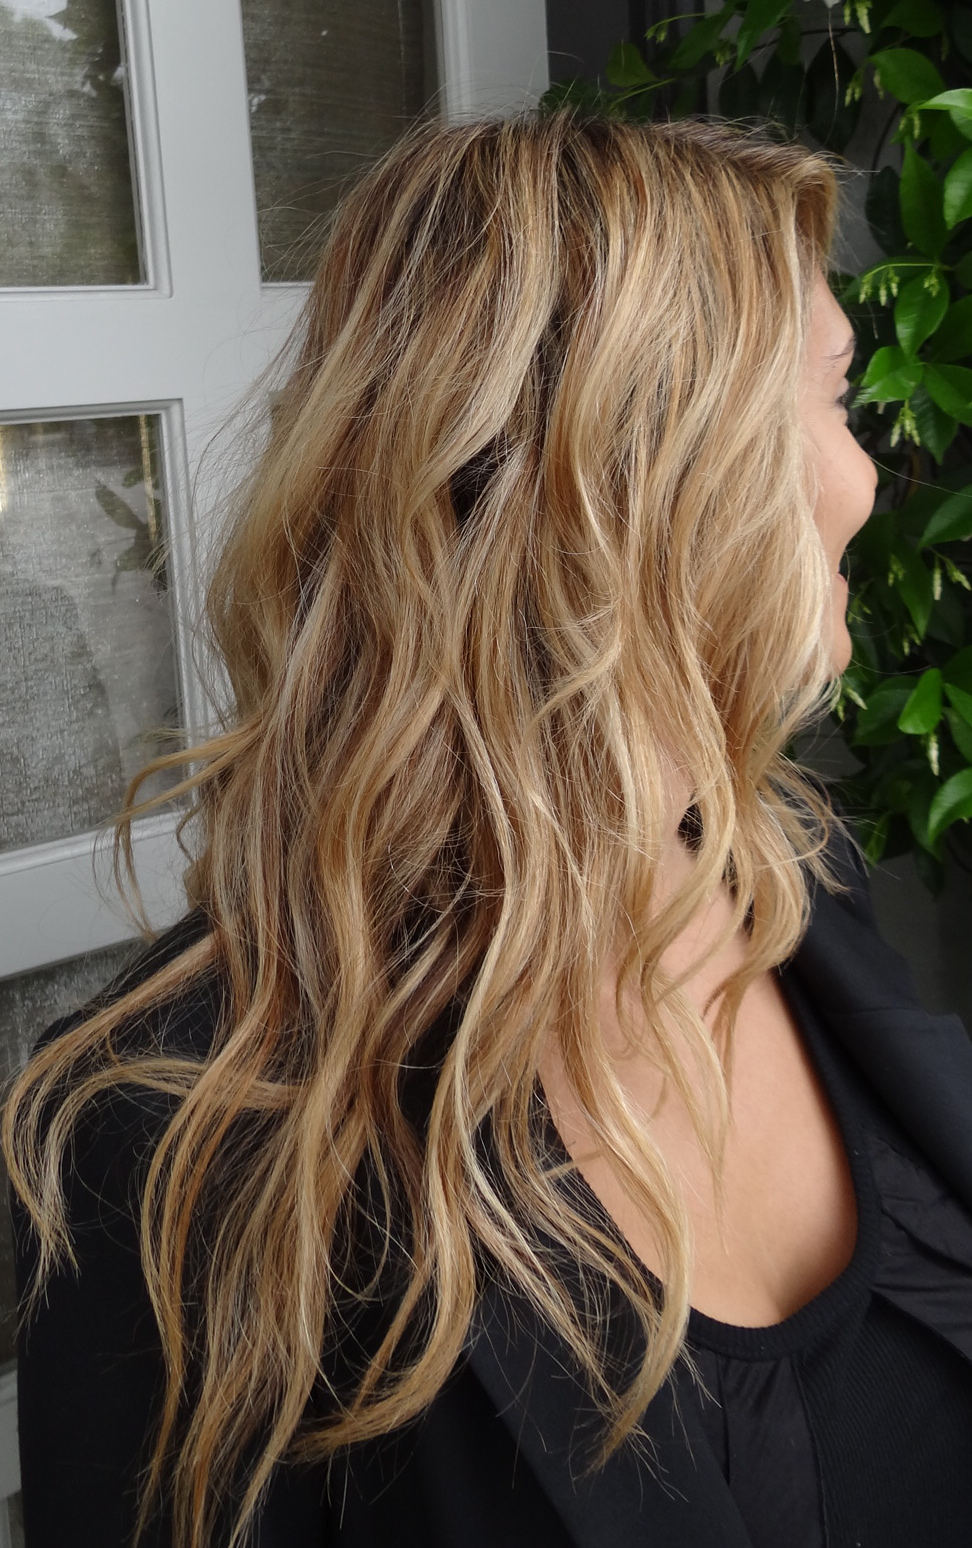 how to get blonde highlights in brown hair naturally